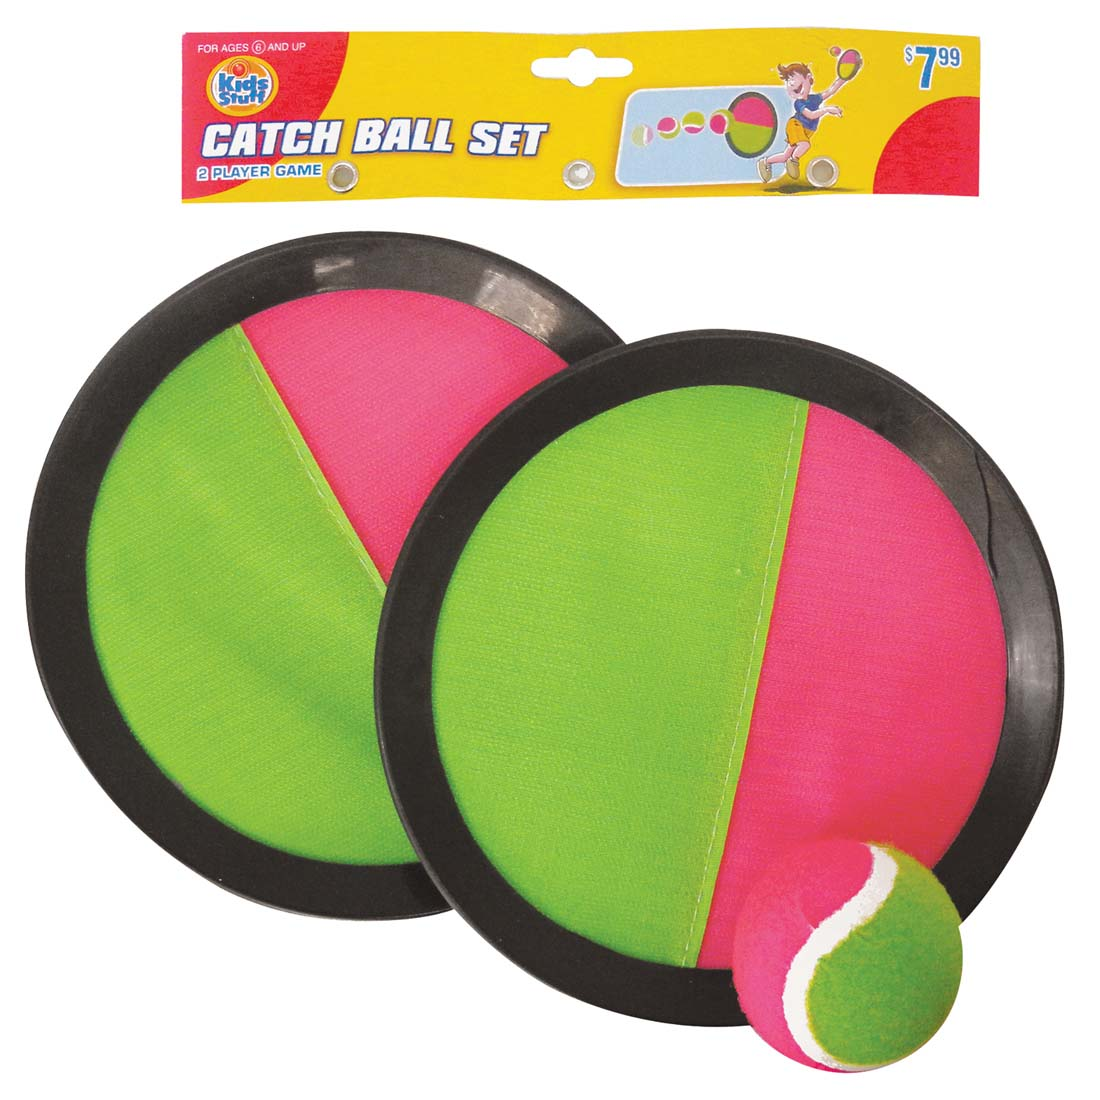 View CATCH BALL SET INCLUDES 2 VELCRO MITTS/ 1 BALL AGES 6+ PREPRICED $7.99